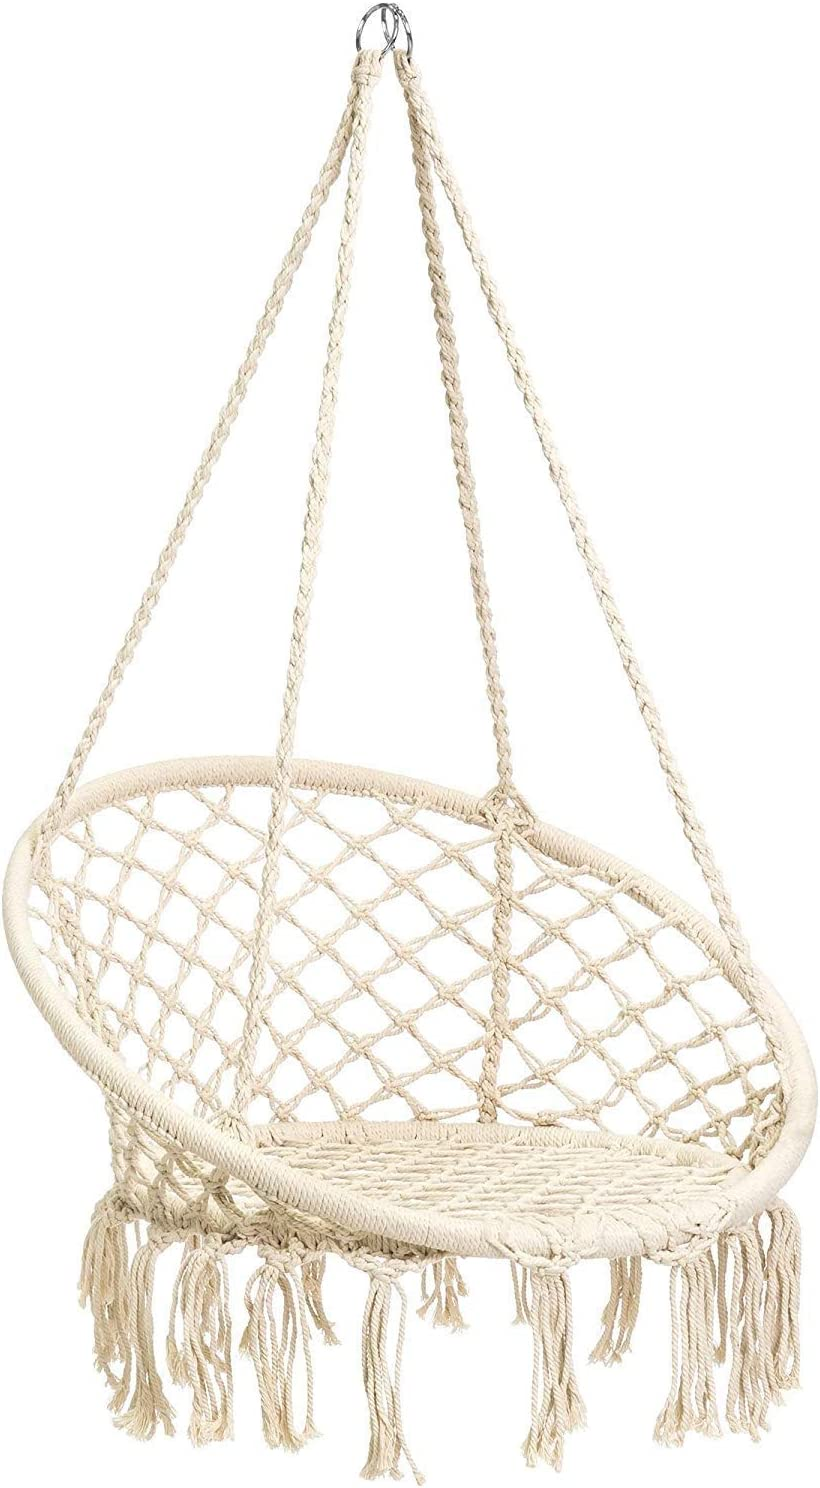 Amazon Com Cctro Hammock Chair Macrame Swing Boho Style Rattan Chair Hanging Macrame Hammock Swing Chairs For Indoor Outdoor Home Patio Porch Yard Garden Deck 265 Pound Capacity C Beige Garden